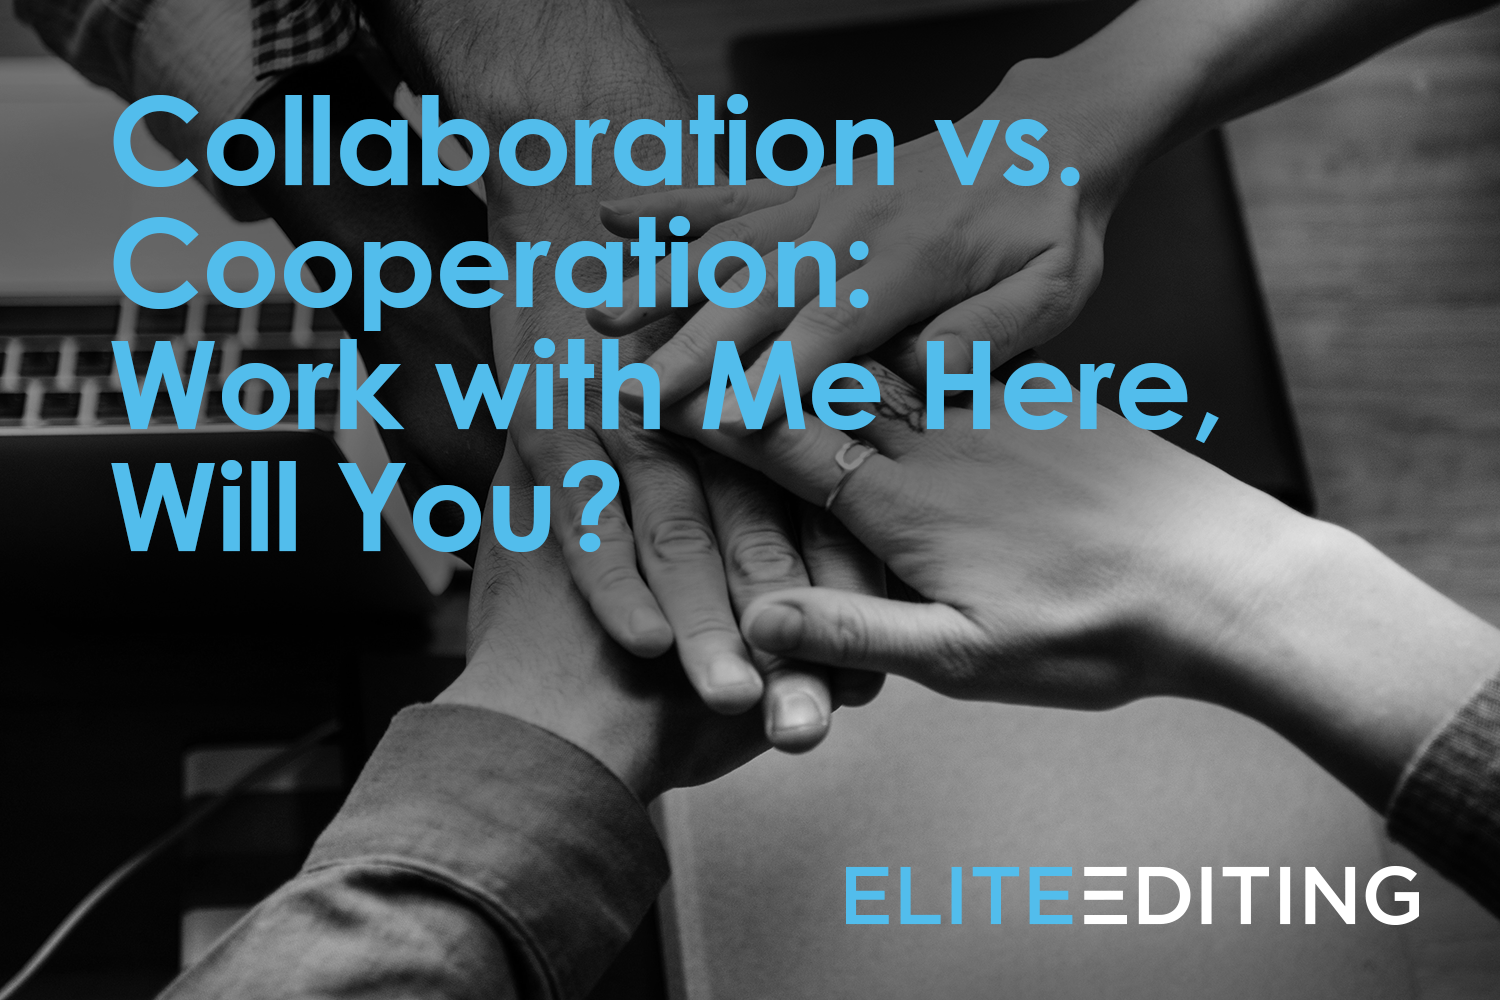 collaboration vs. cooperation